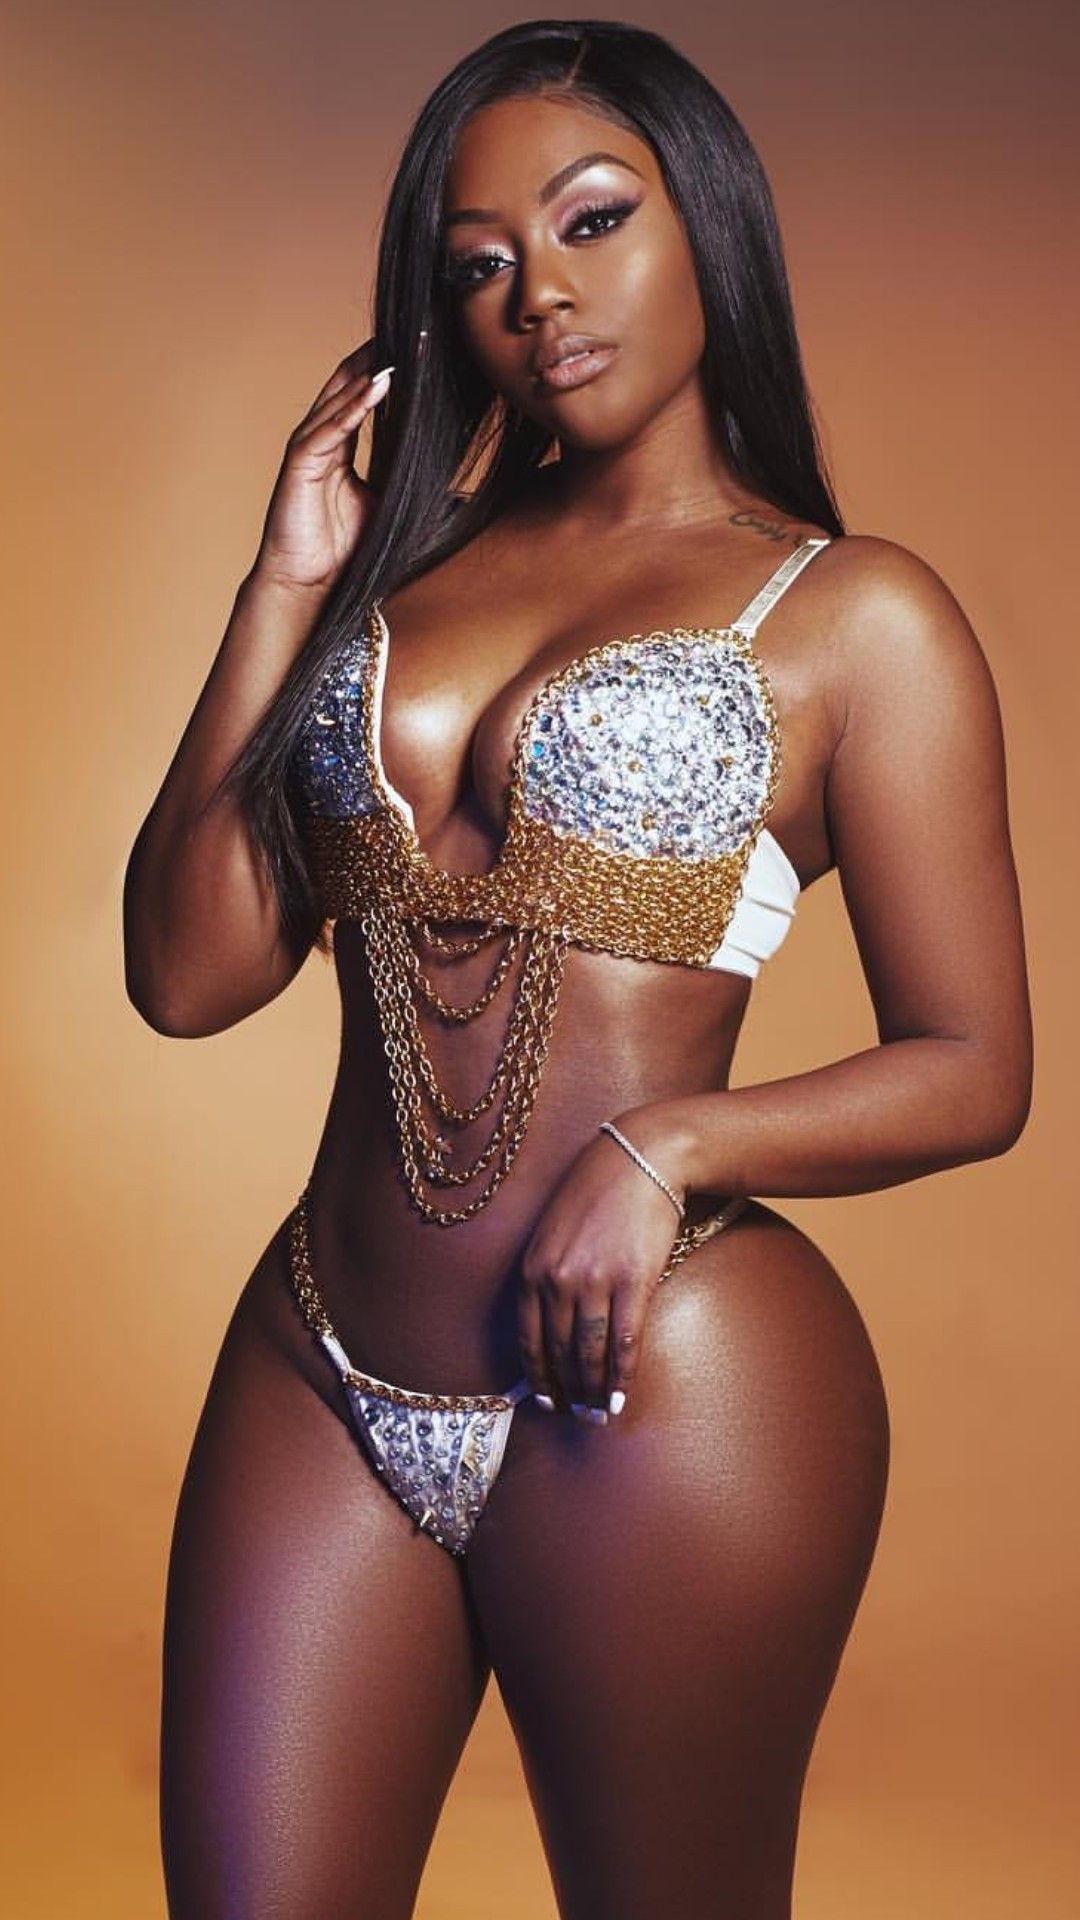 Sexy Black Girl Wearing Lingerie Stock Photo